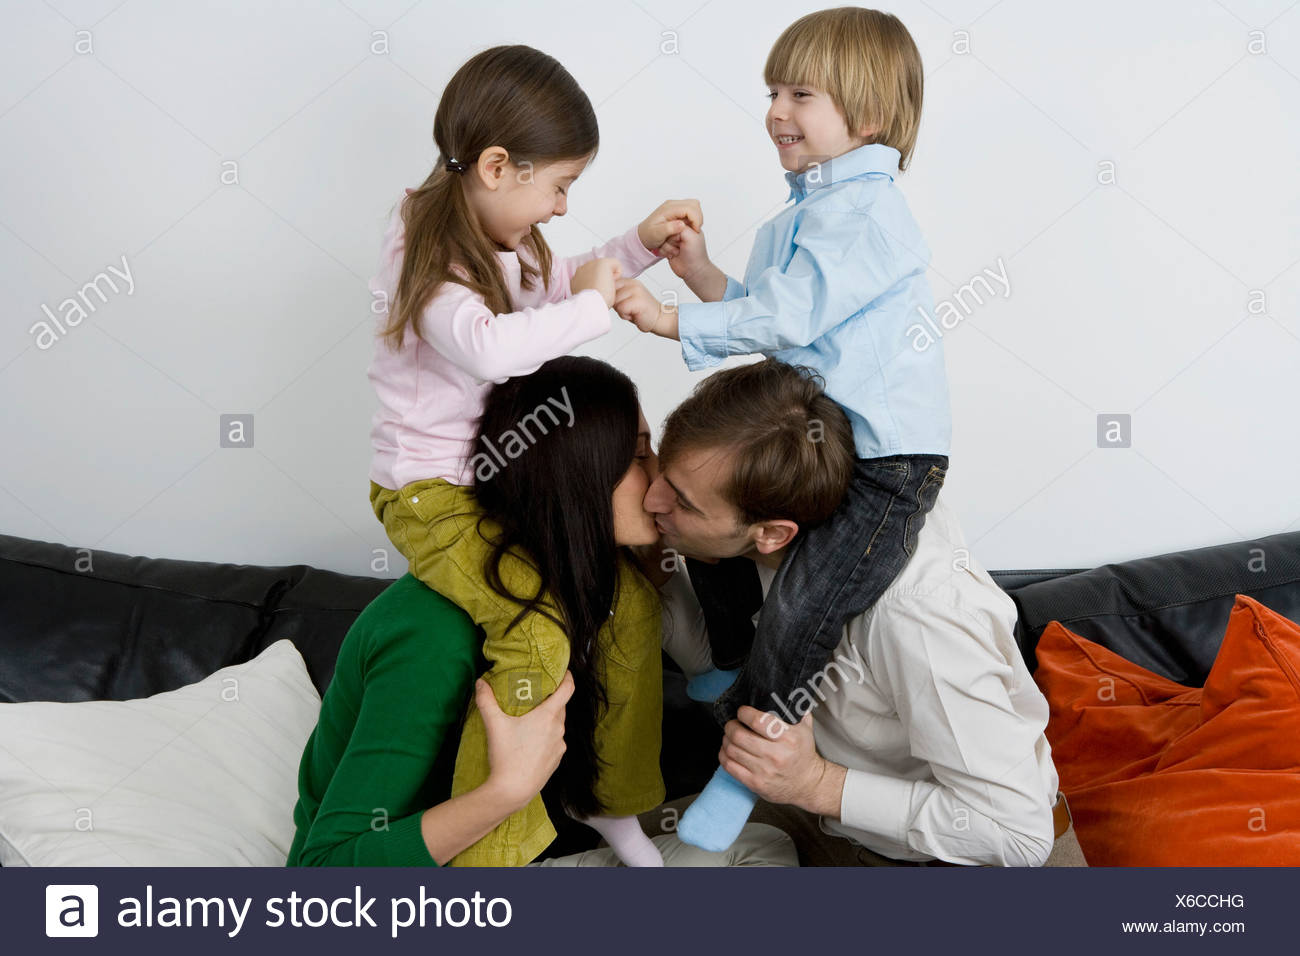 Two parents carrying children on their shoulders and kissing - Stock Image